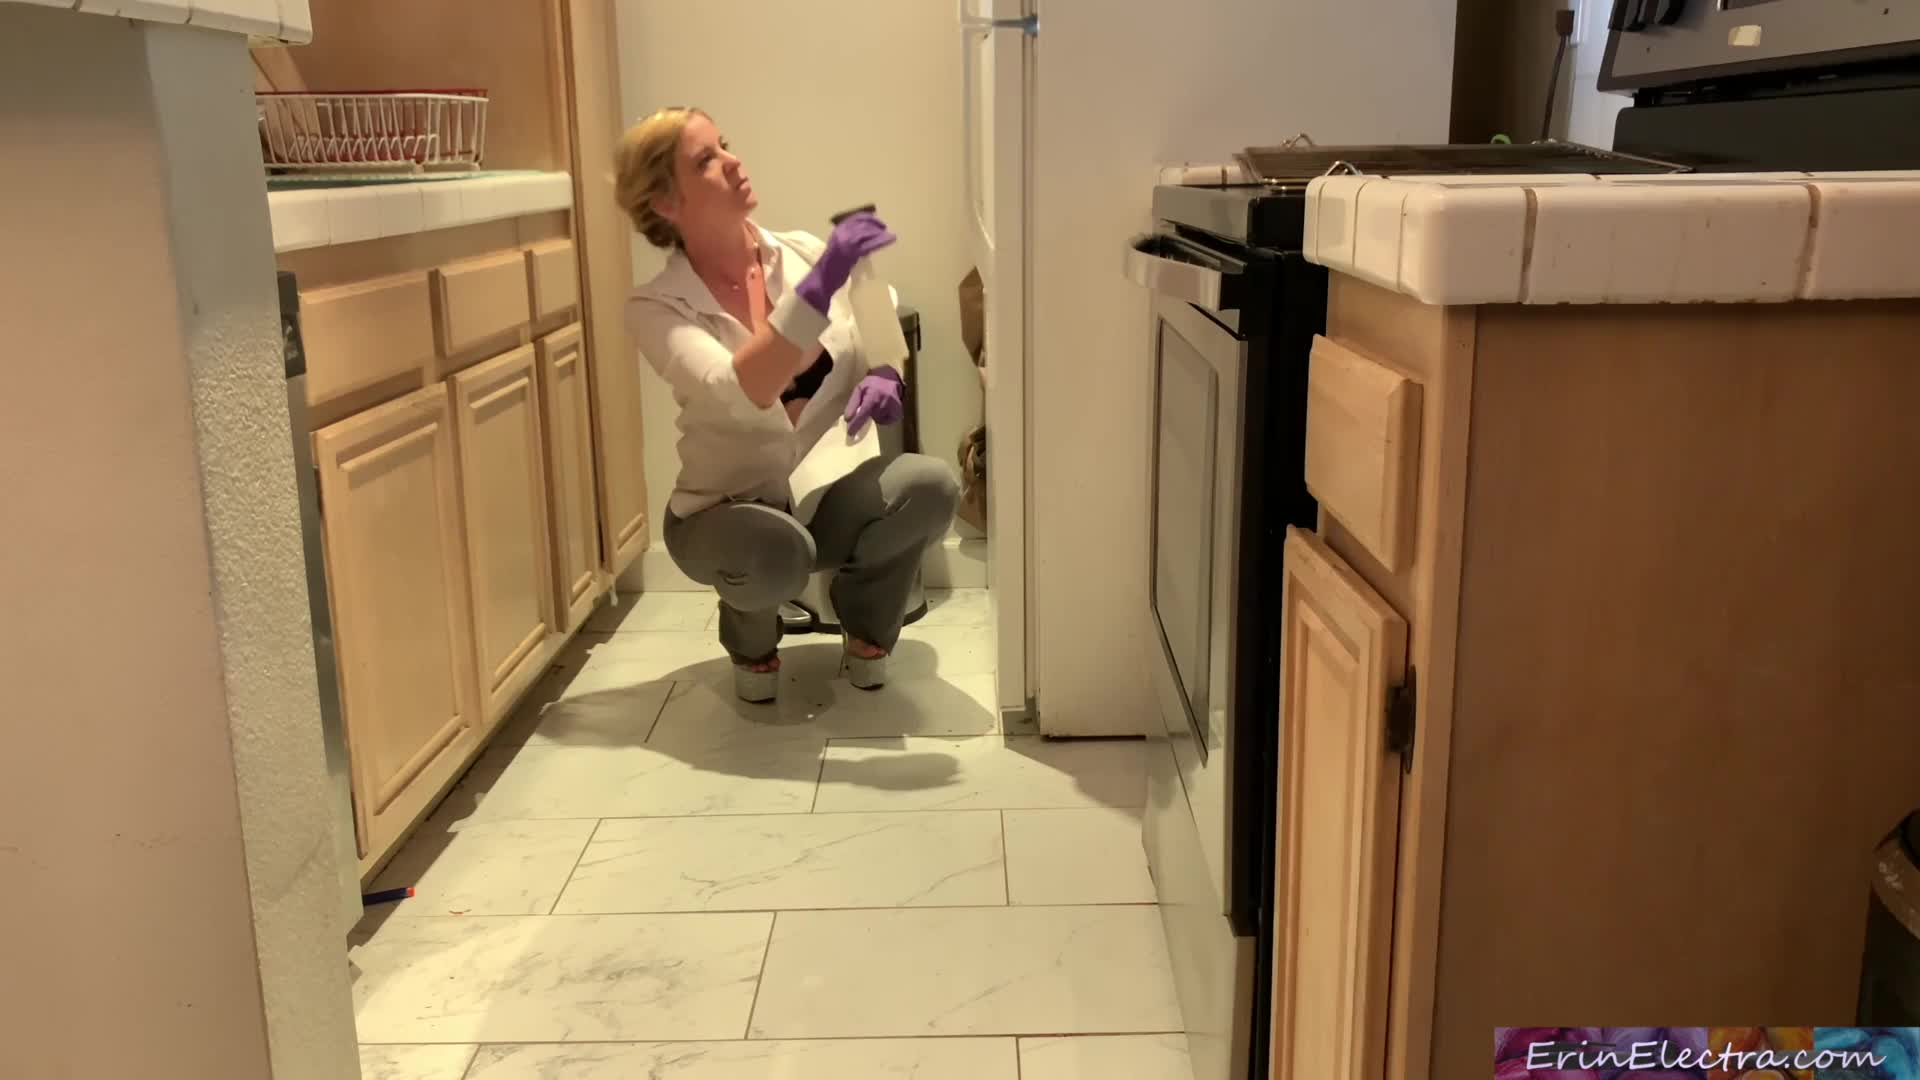 Stepmom is horny and stuck in the oven - Erin Electra-51716423